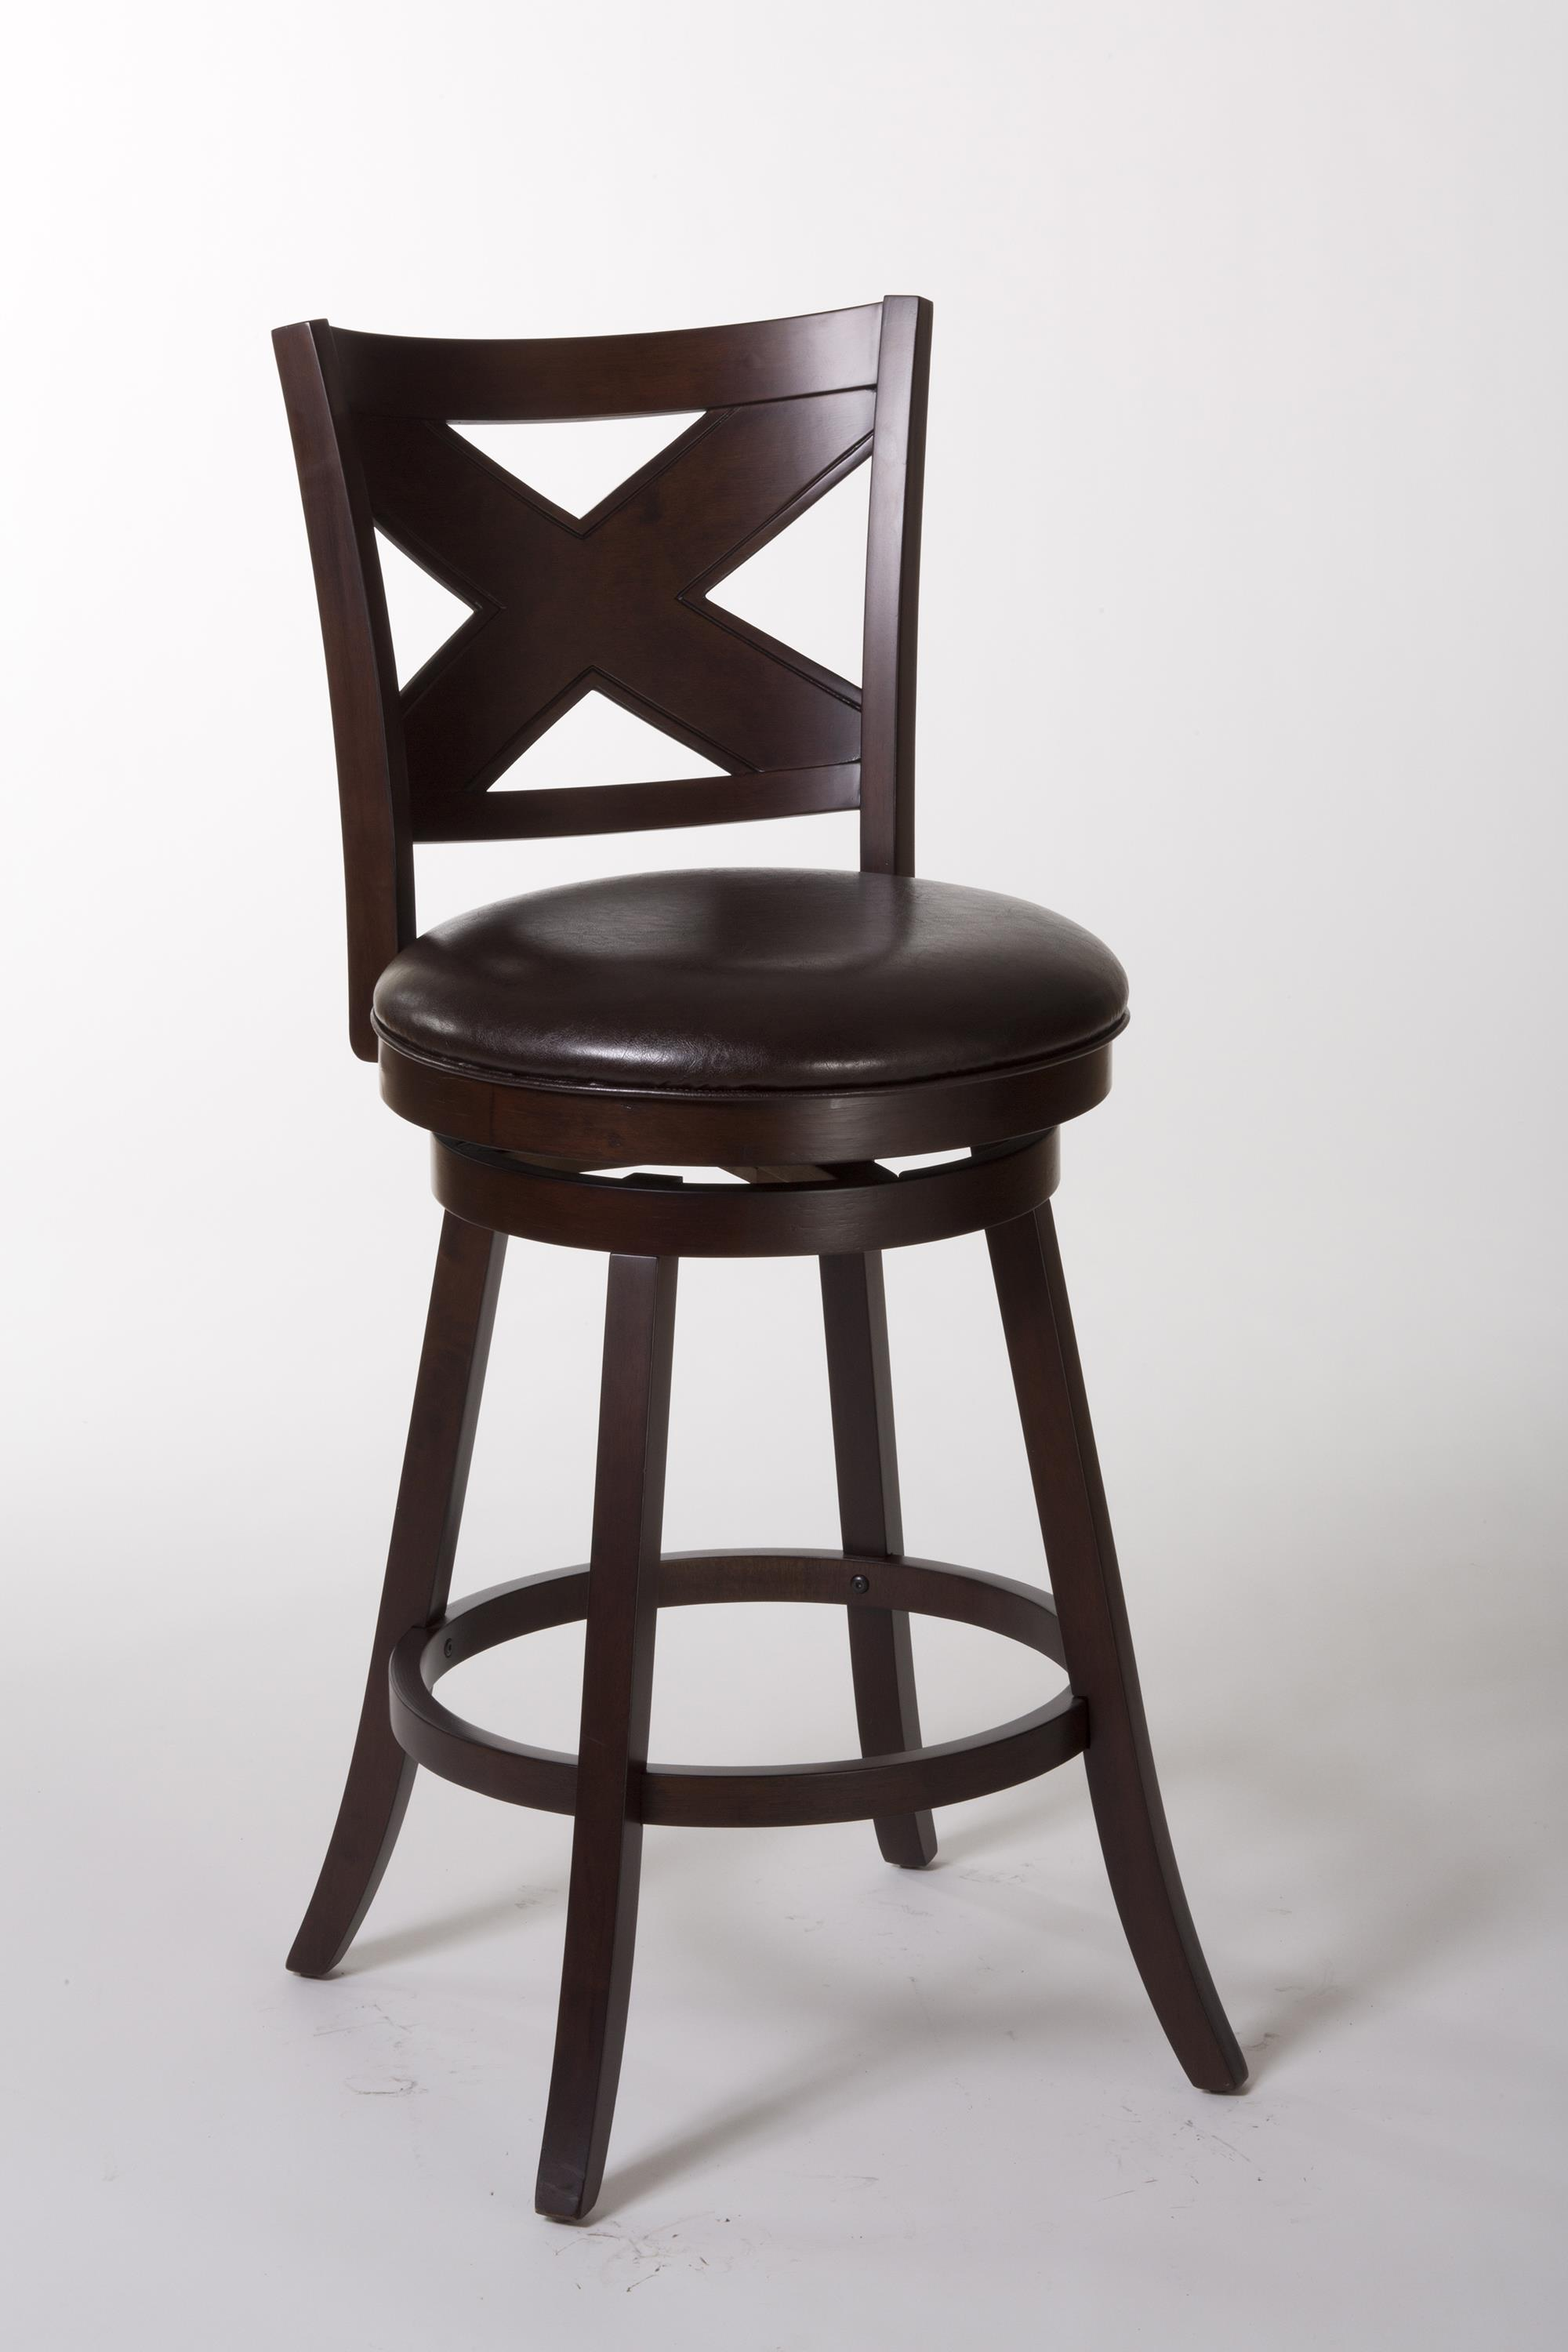 Hillsdale Wood Stools Ashbrook Counter Stool - Item Number: 5209-826